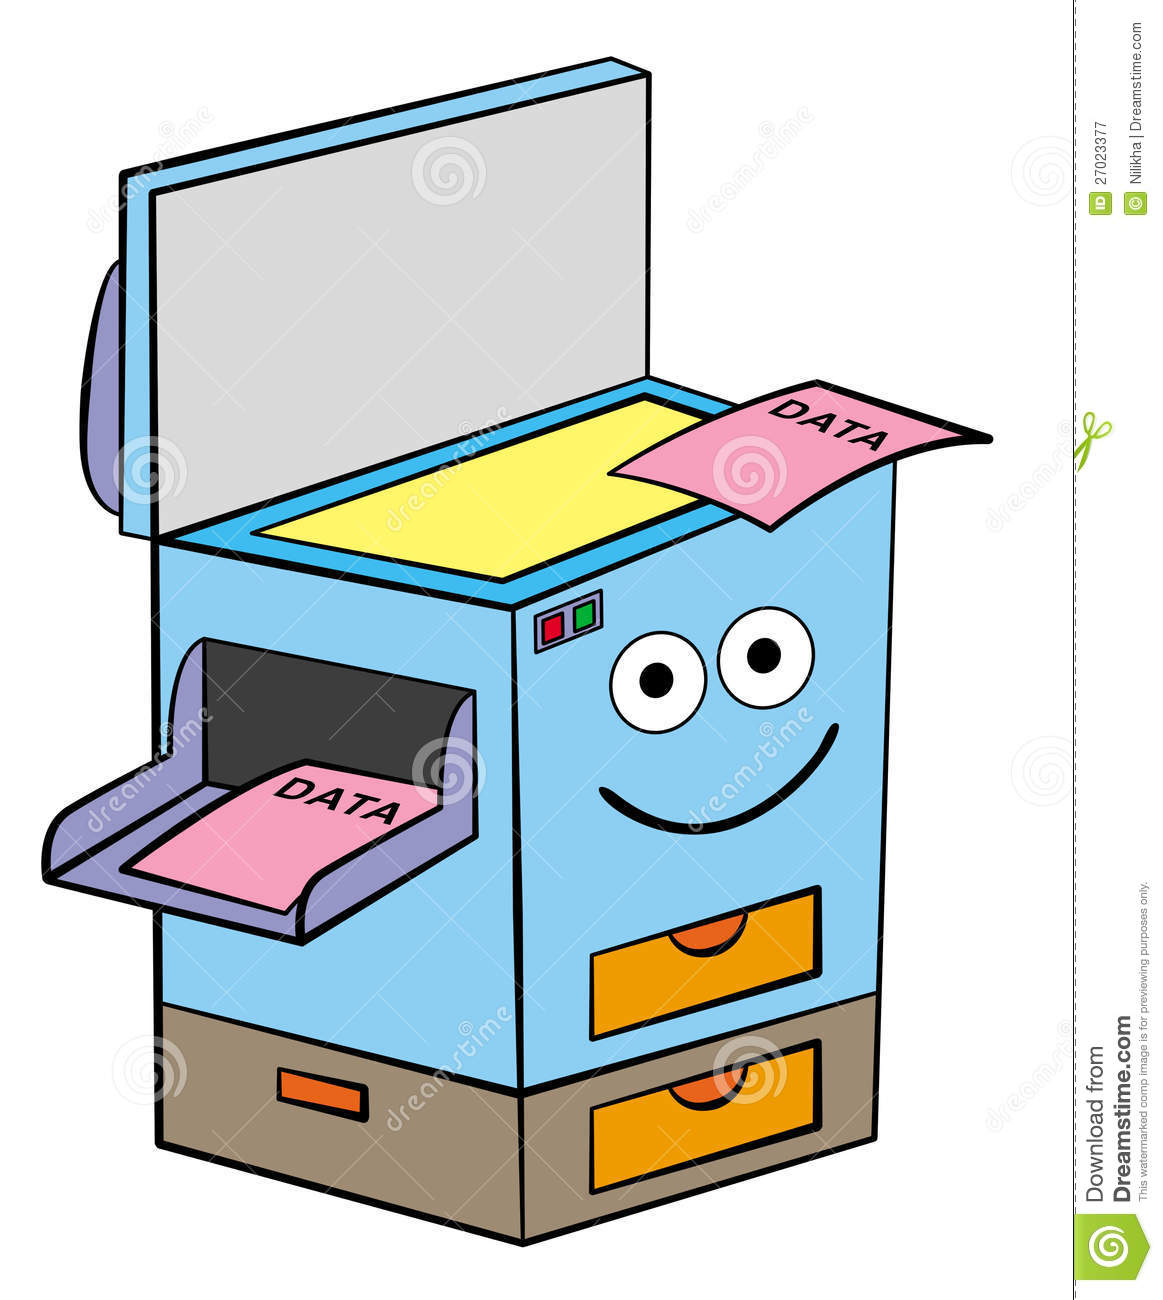 Clipart copy machine.